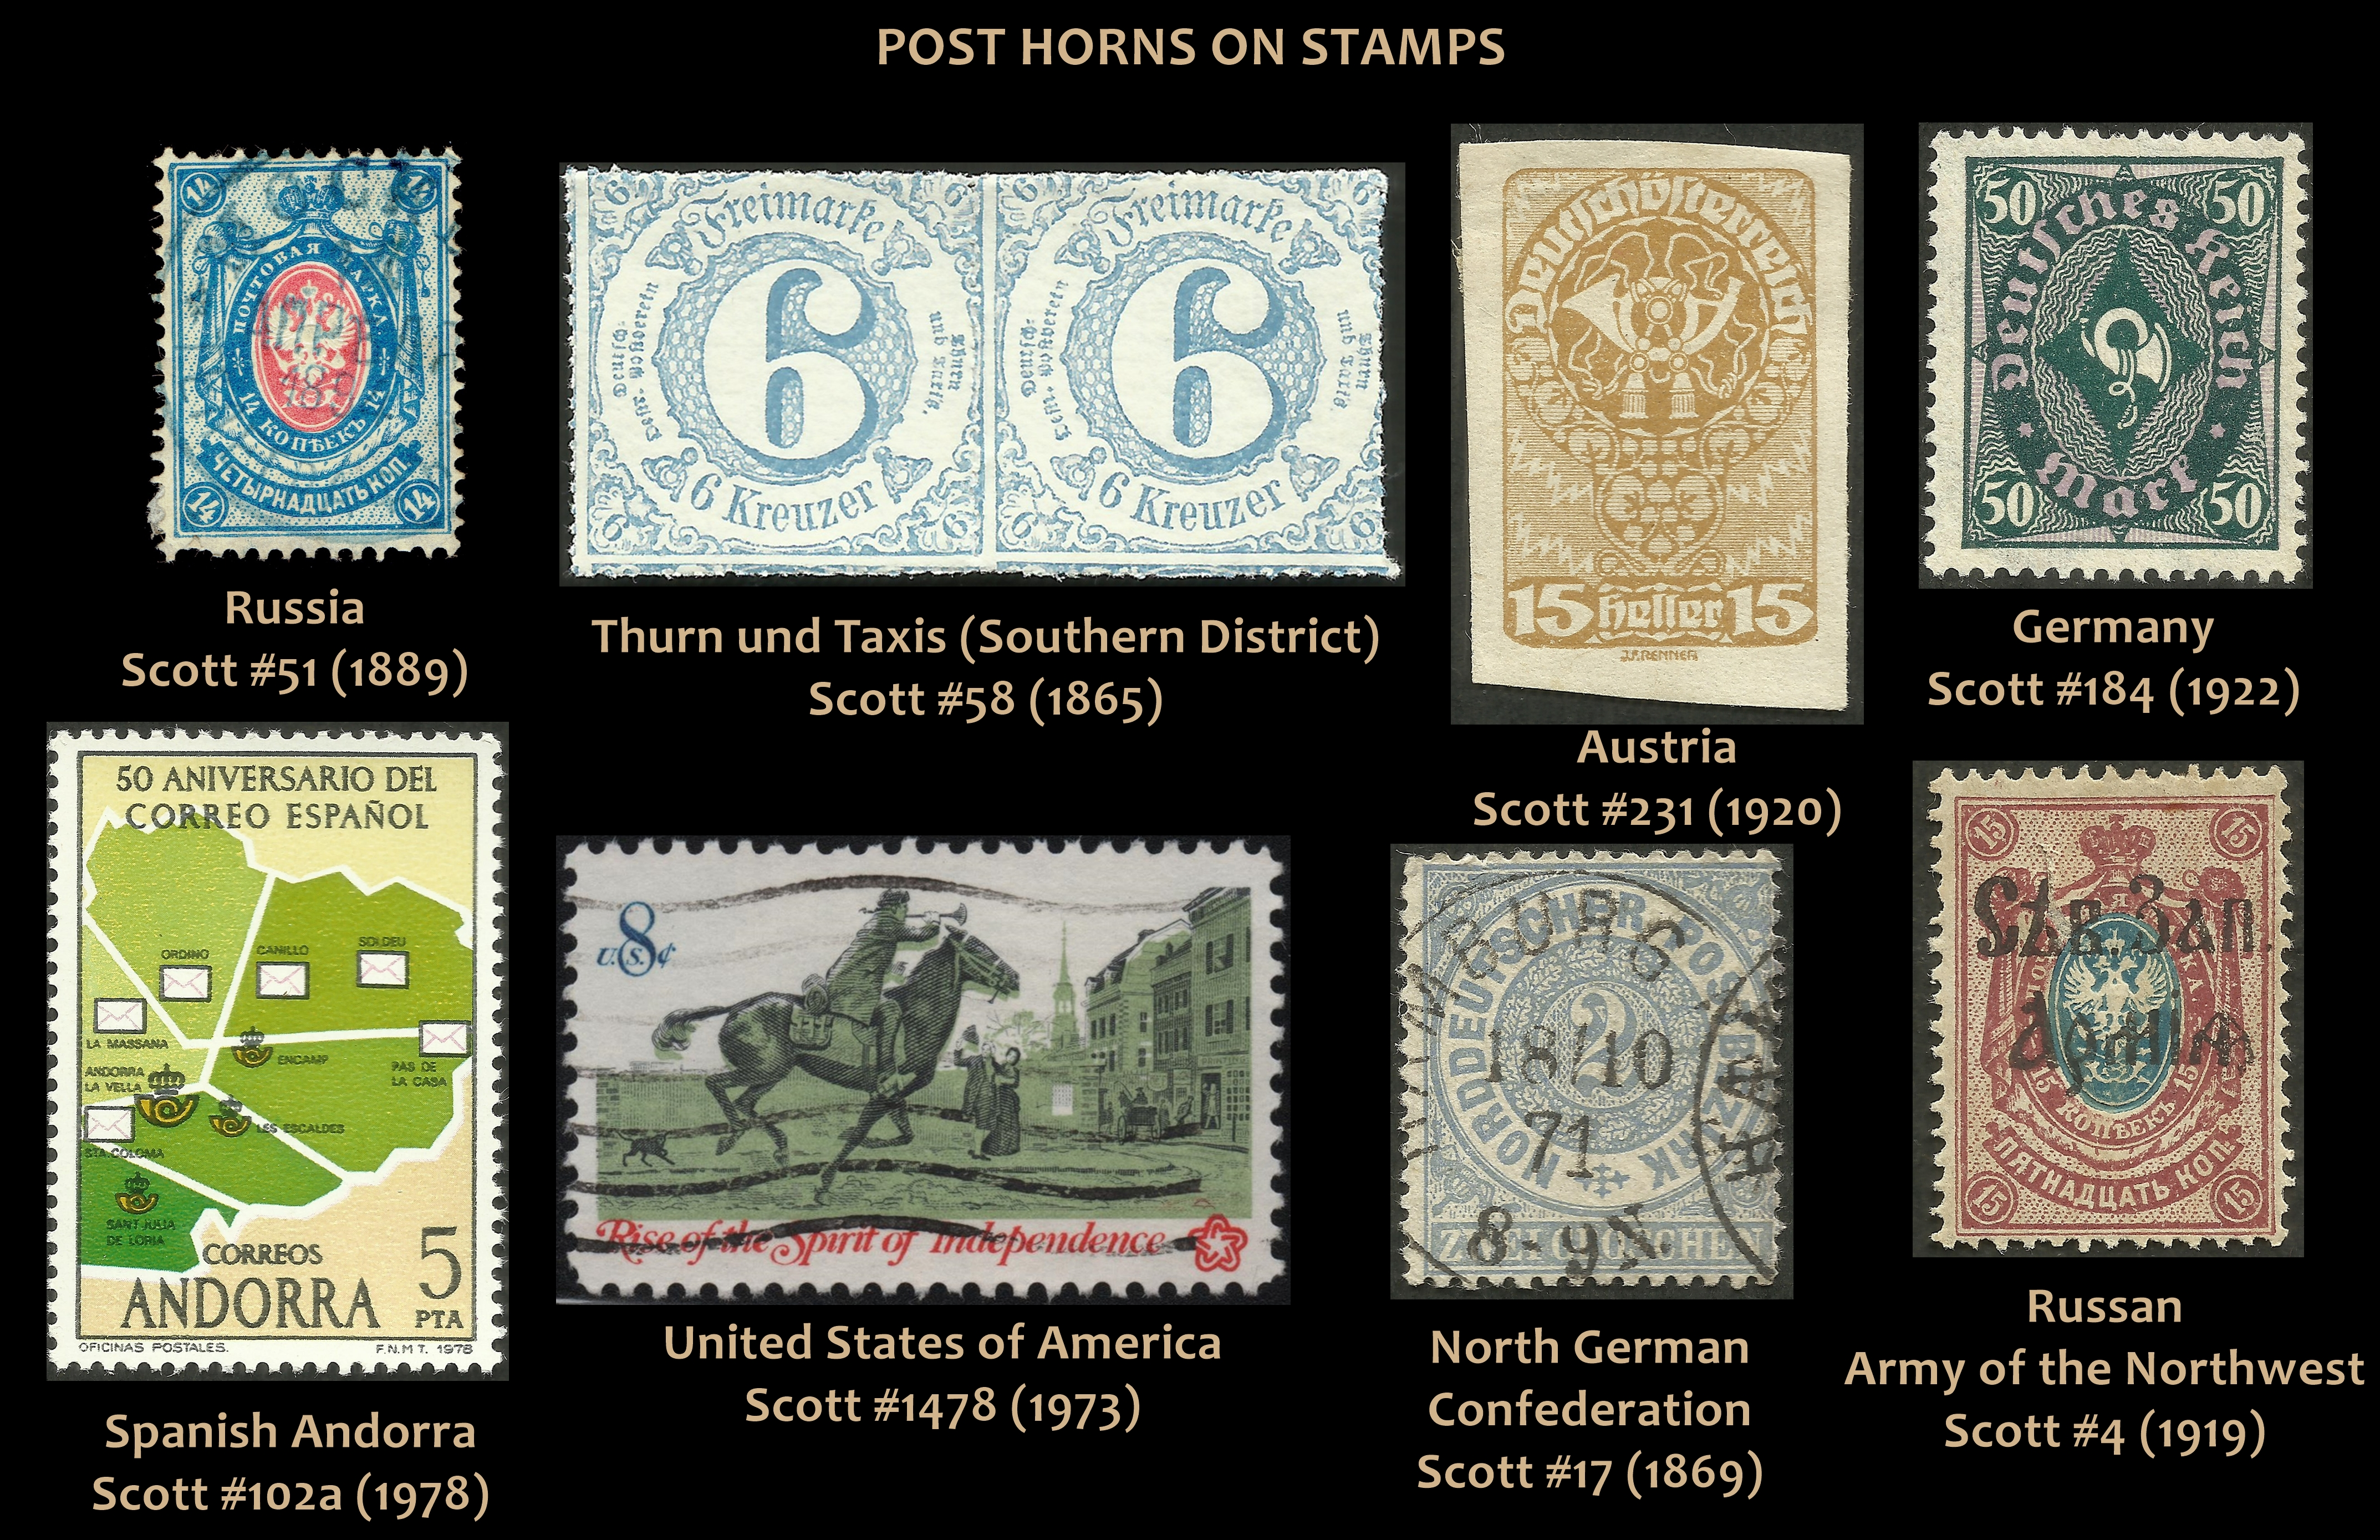 Post Horns on stamps, a very small sampling